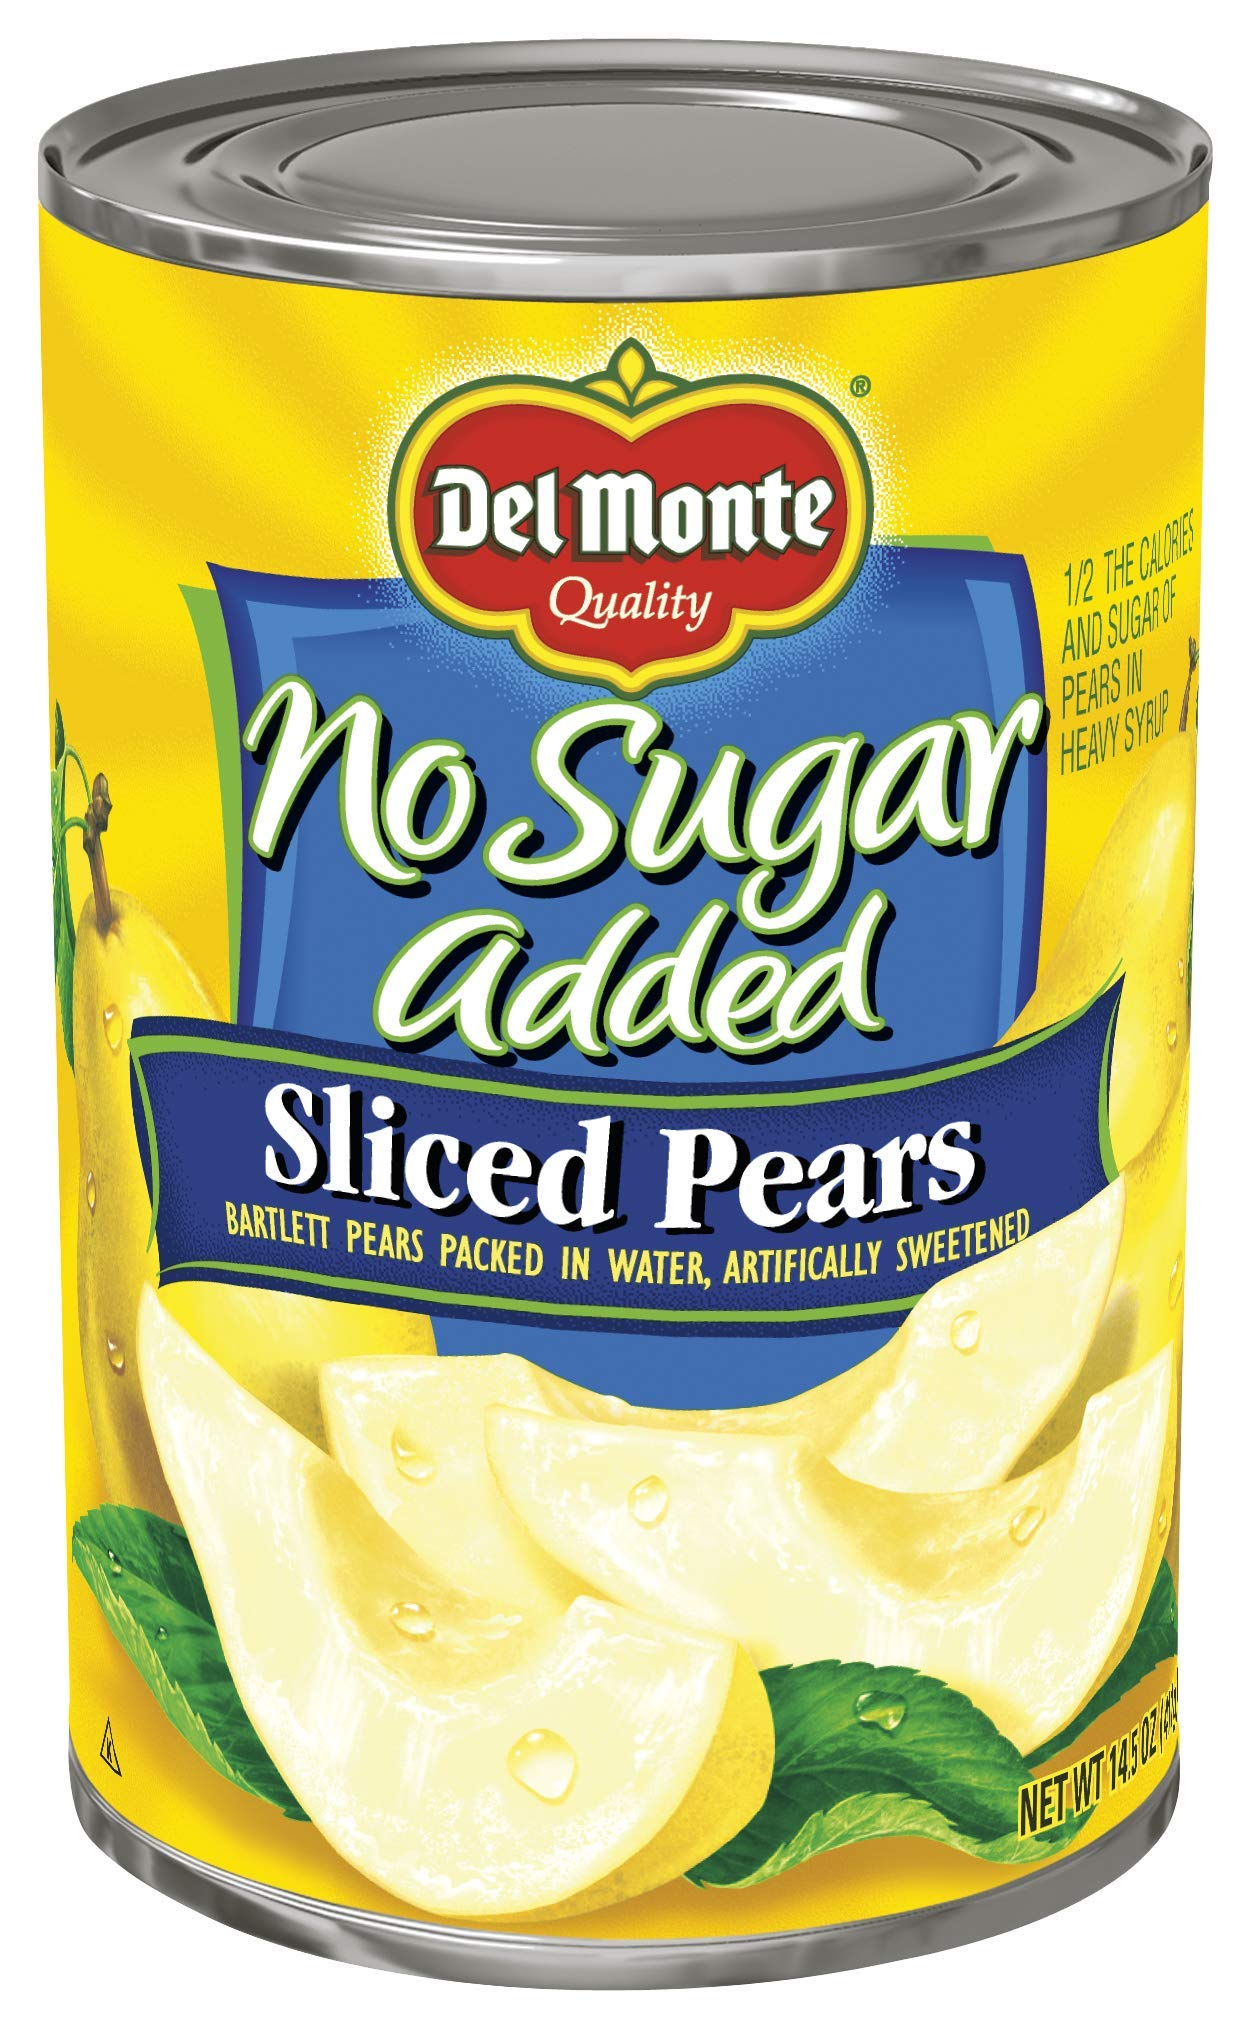 Del Monte Canned Bartlett Sliced Pears in Water, No Sugar Added, 14.5 Ounce, Pack of 12 by Del Monte